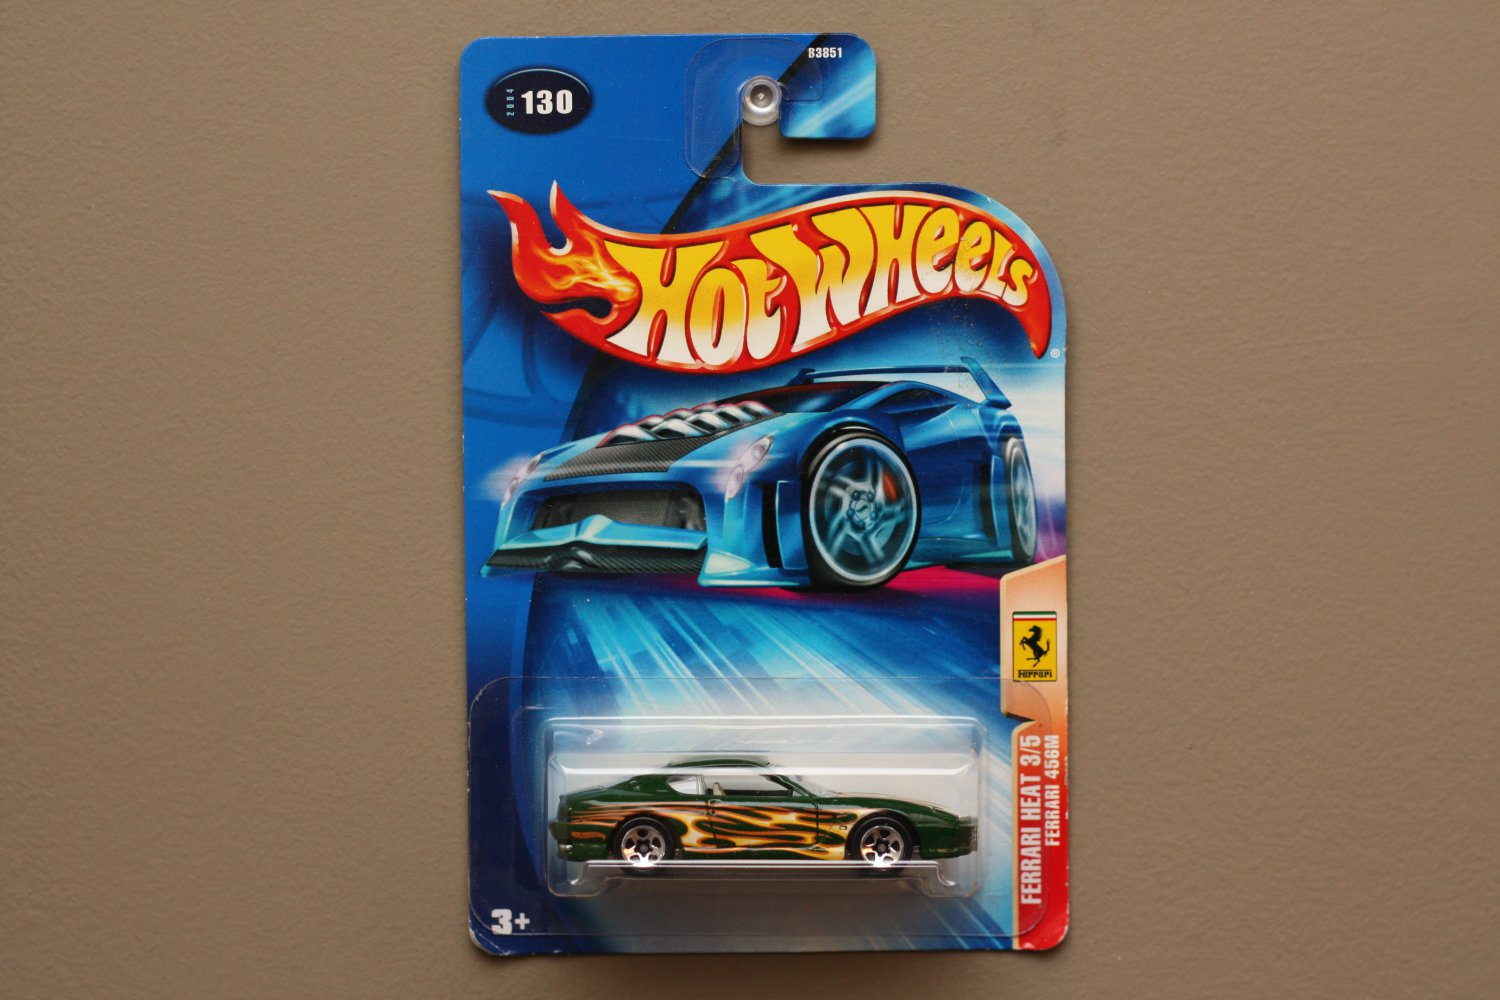 Hot Wheels 2004 Ferrari Heat Ferrari 456M (green) (5-spoke wheel variation)